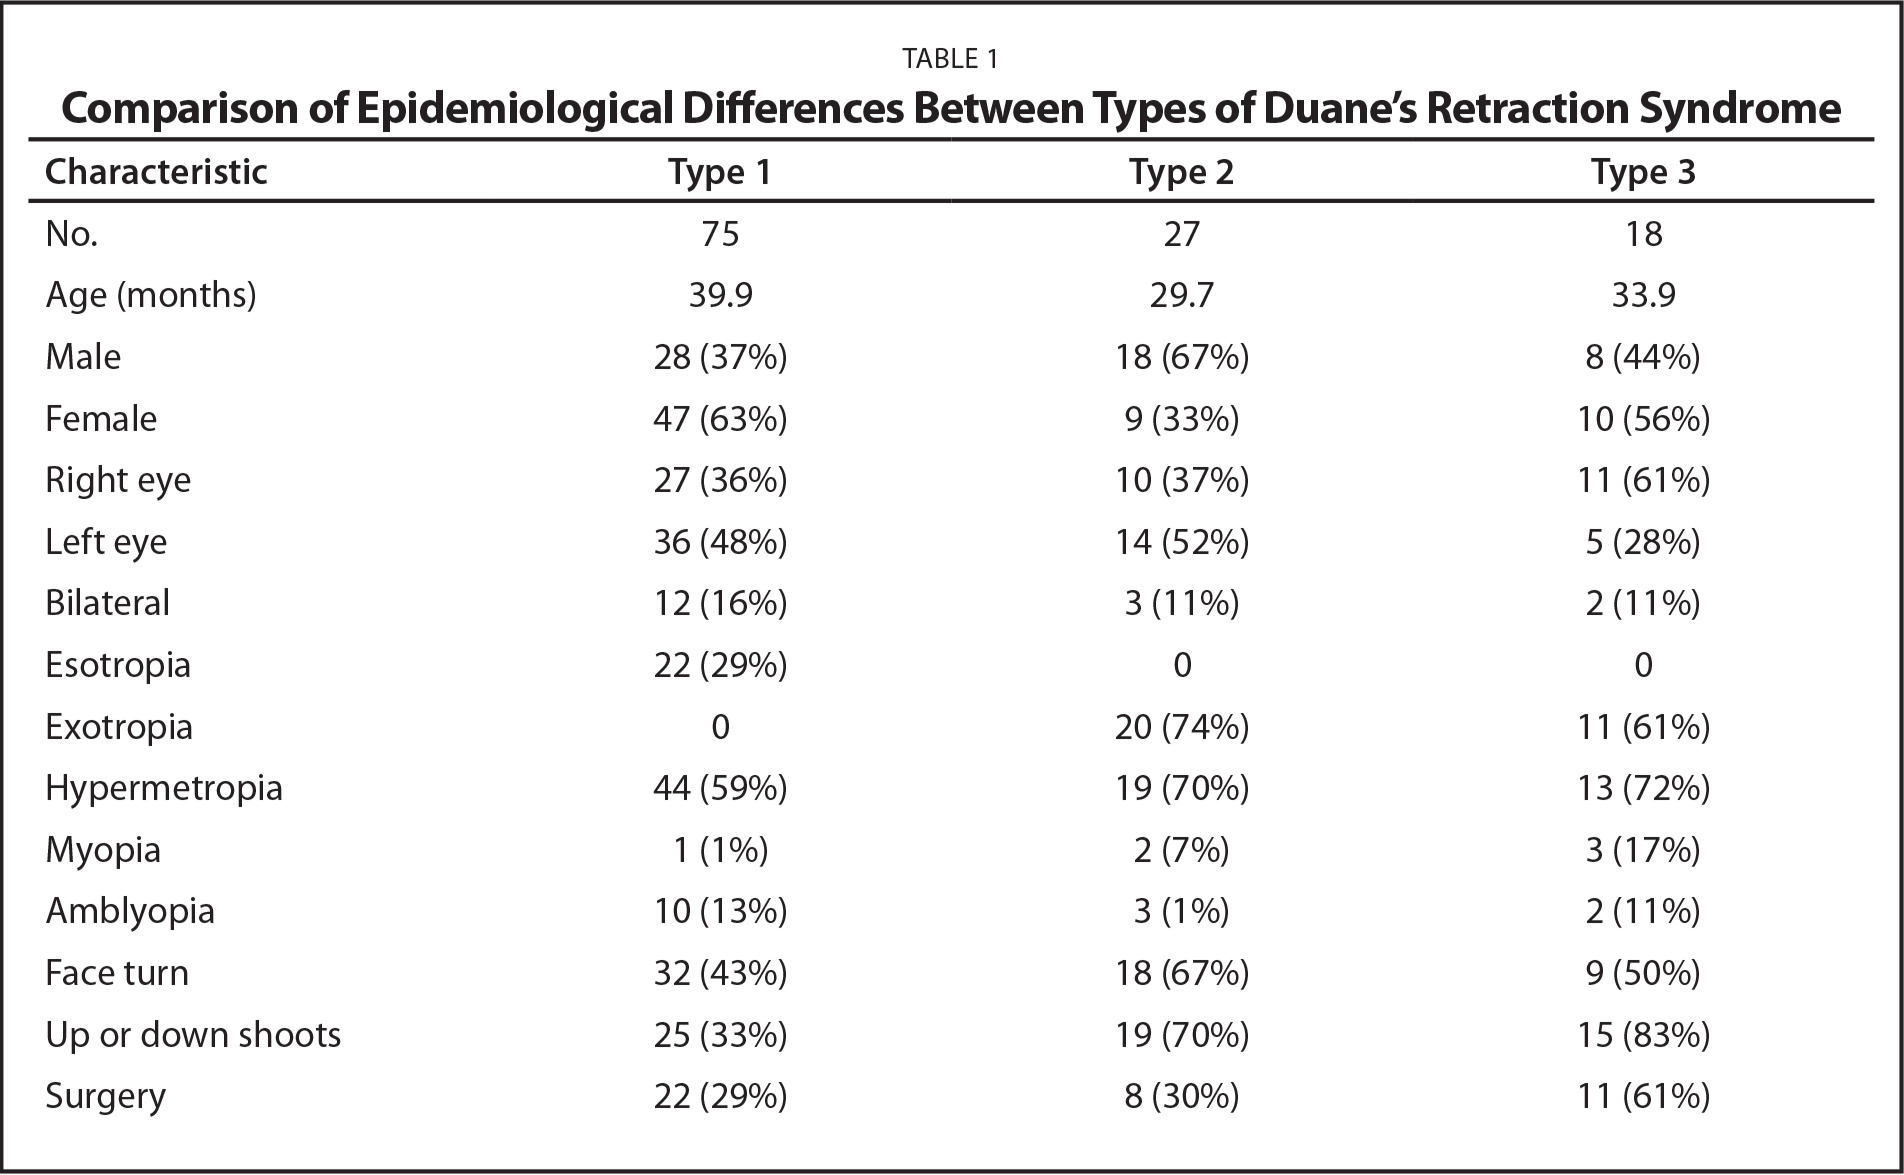 Comparison of Epidemiological Differences Between Types of Duane's Retraction Syndrome